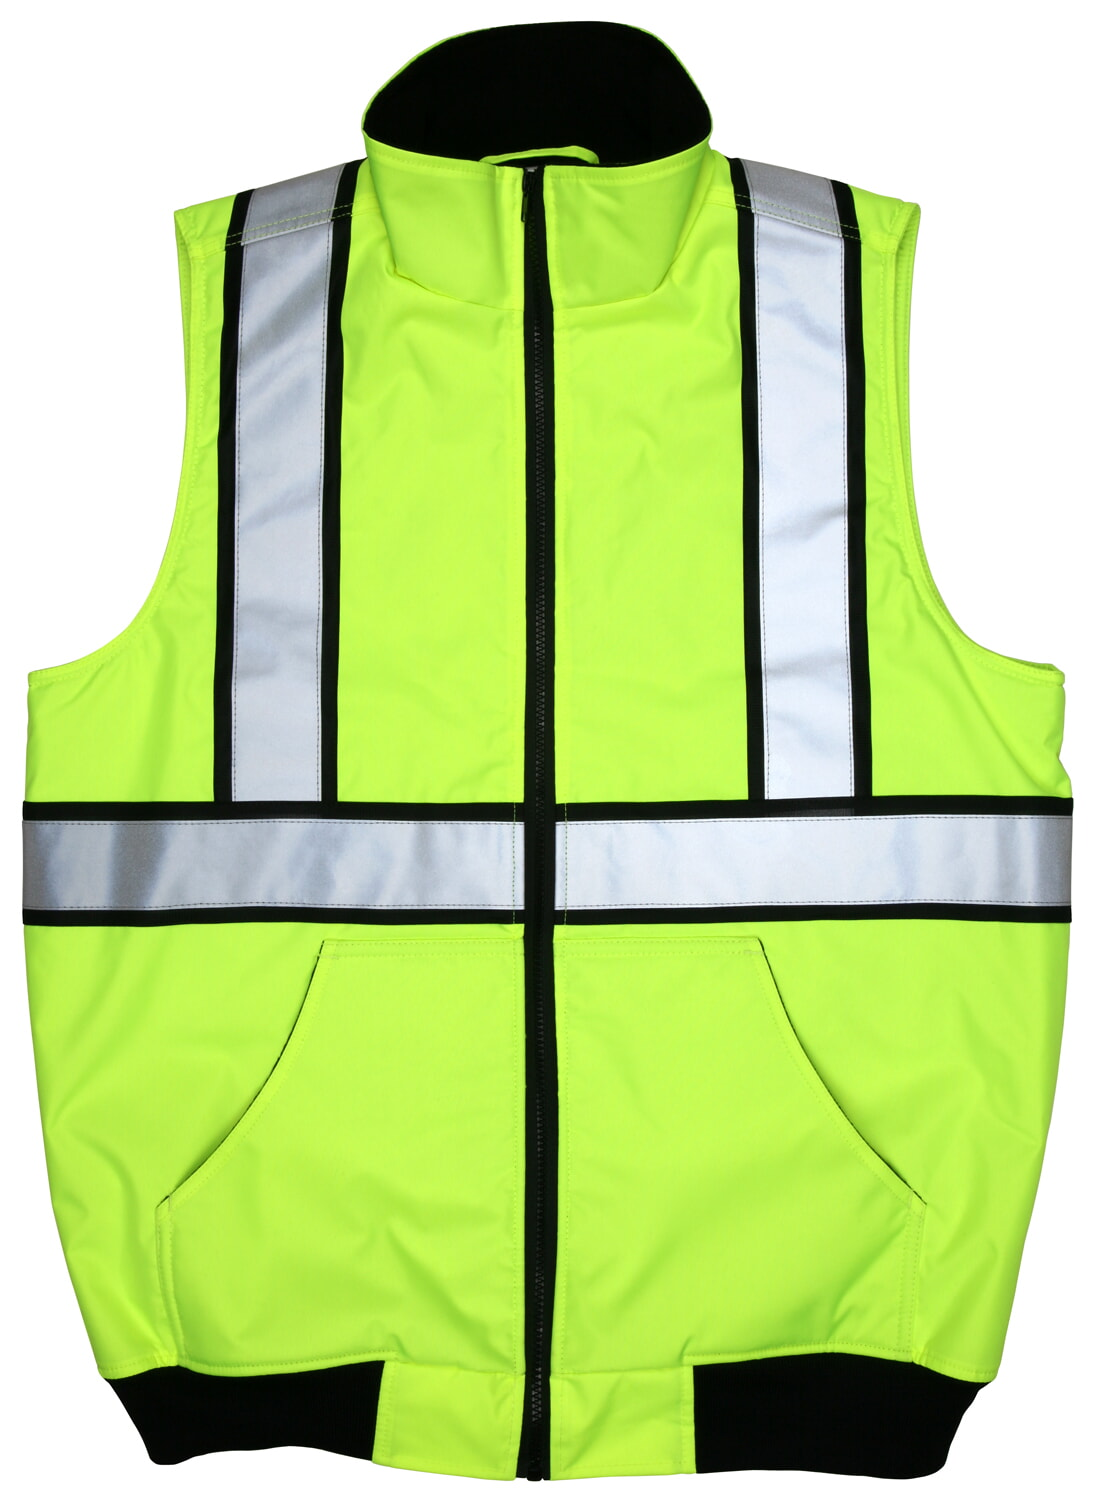 MCR Safety BWCS2L Luminator™, Body Warmer, ANSI Class 2 water resistant insulated polyester, fleece liner w/zipper front Lime Safety Vests